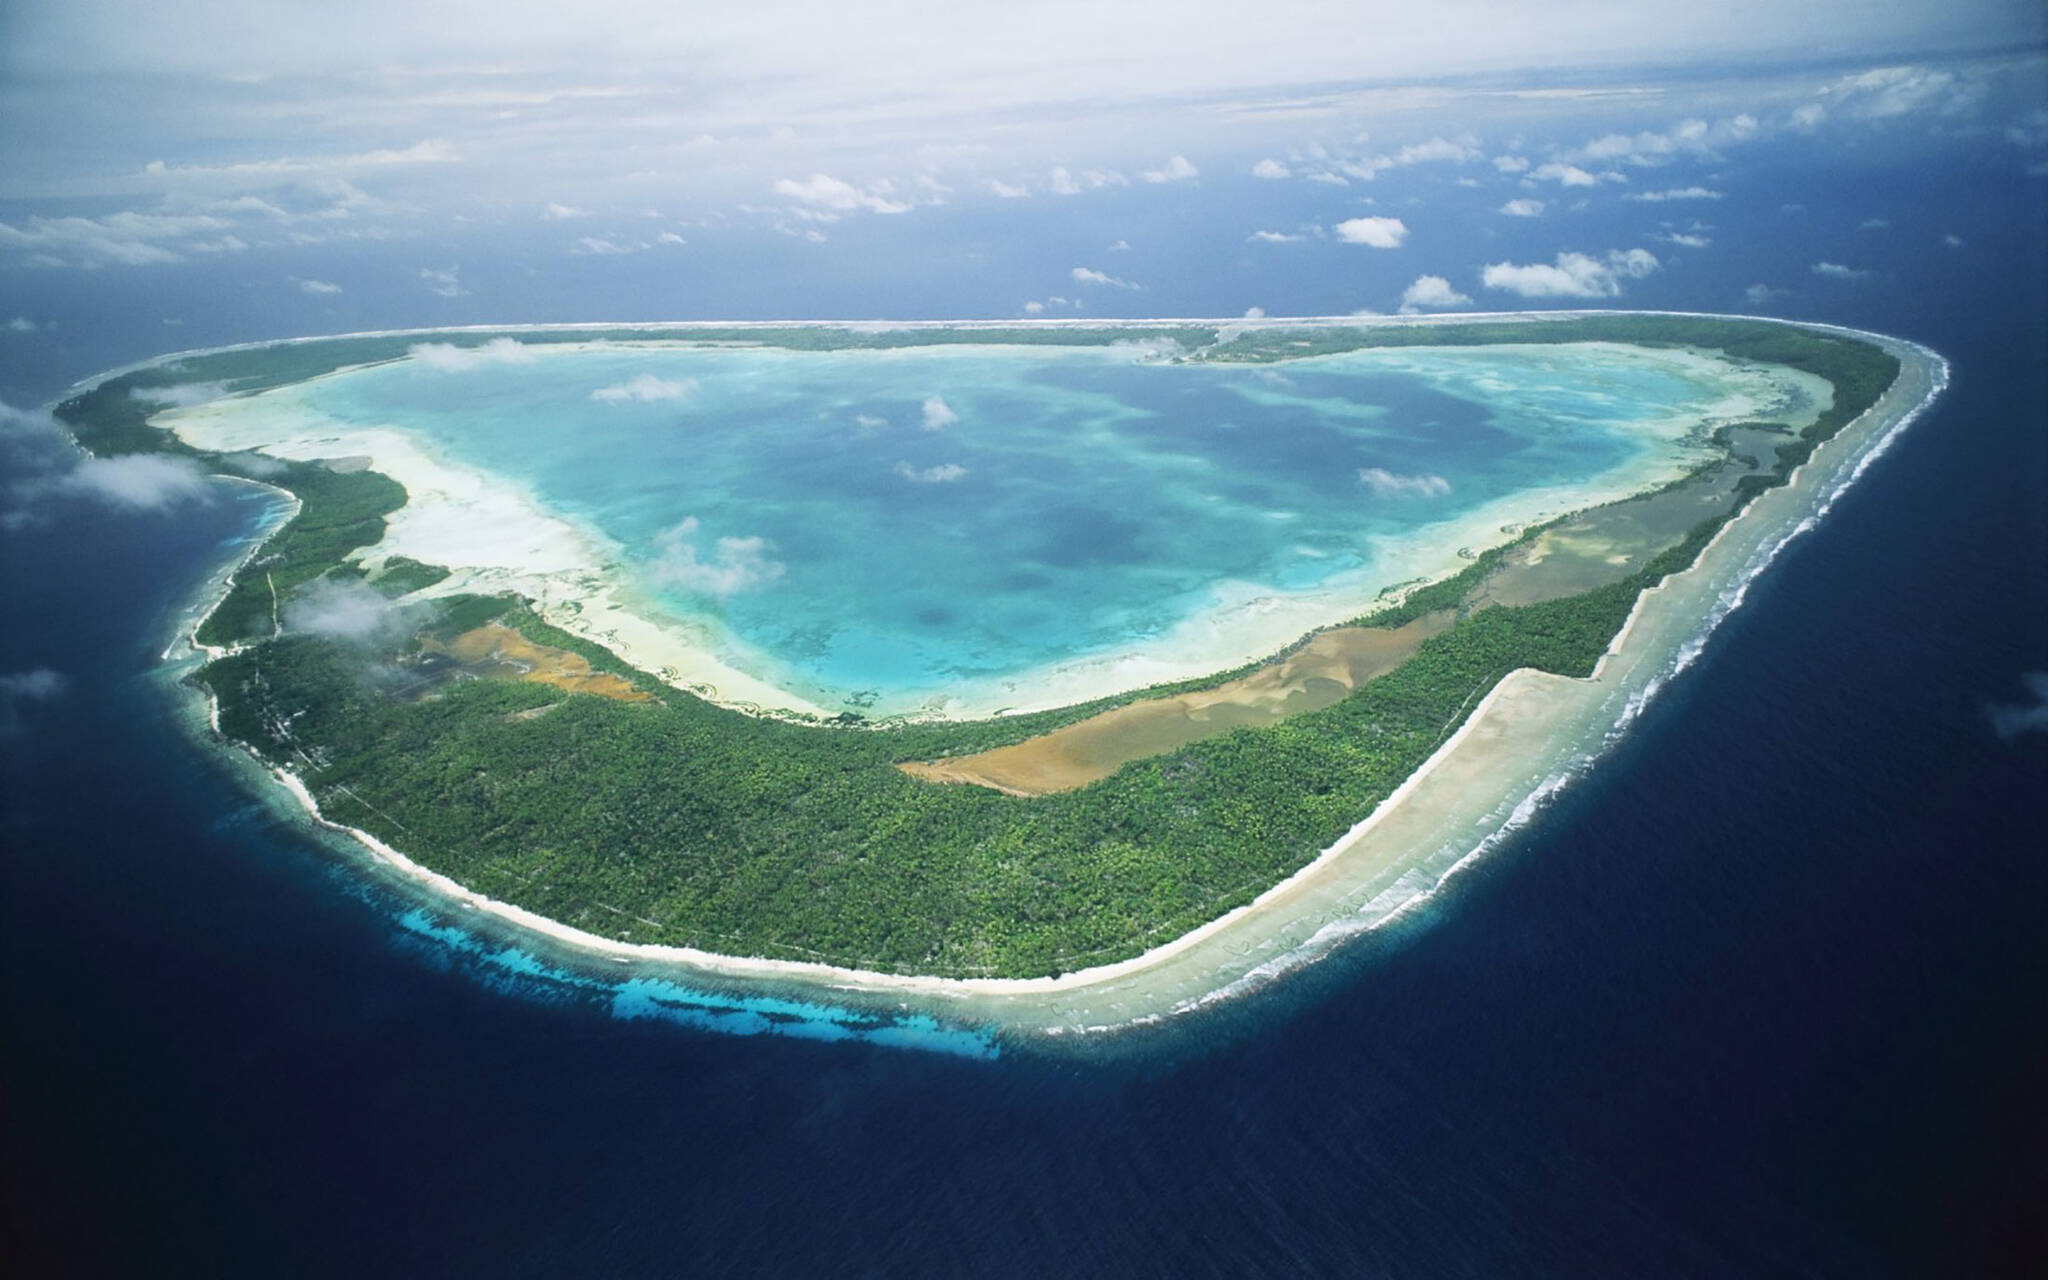 Aerial view of the Aldabra atoll in the Seychelles archipelago